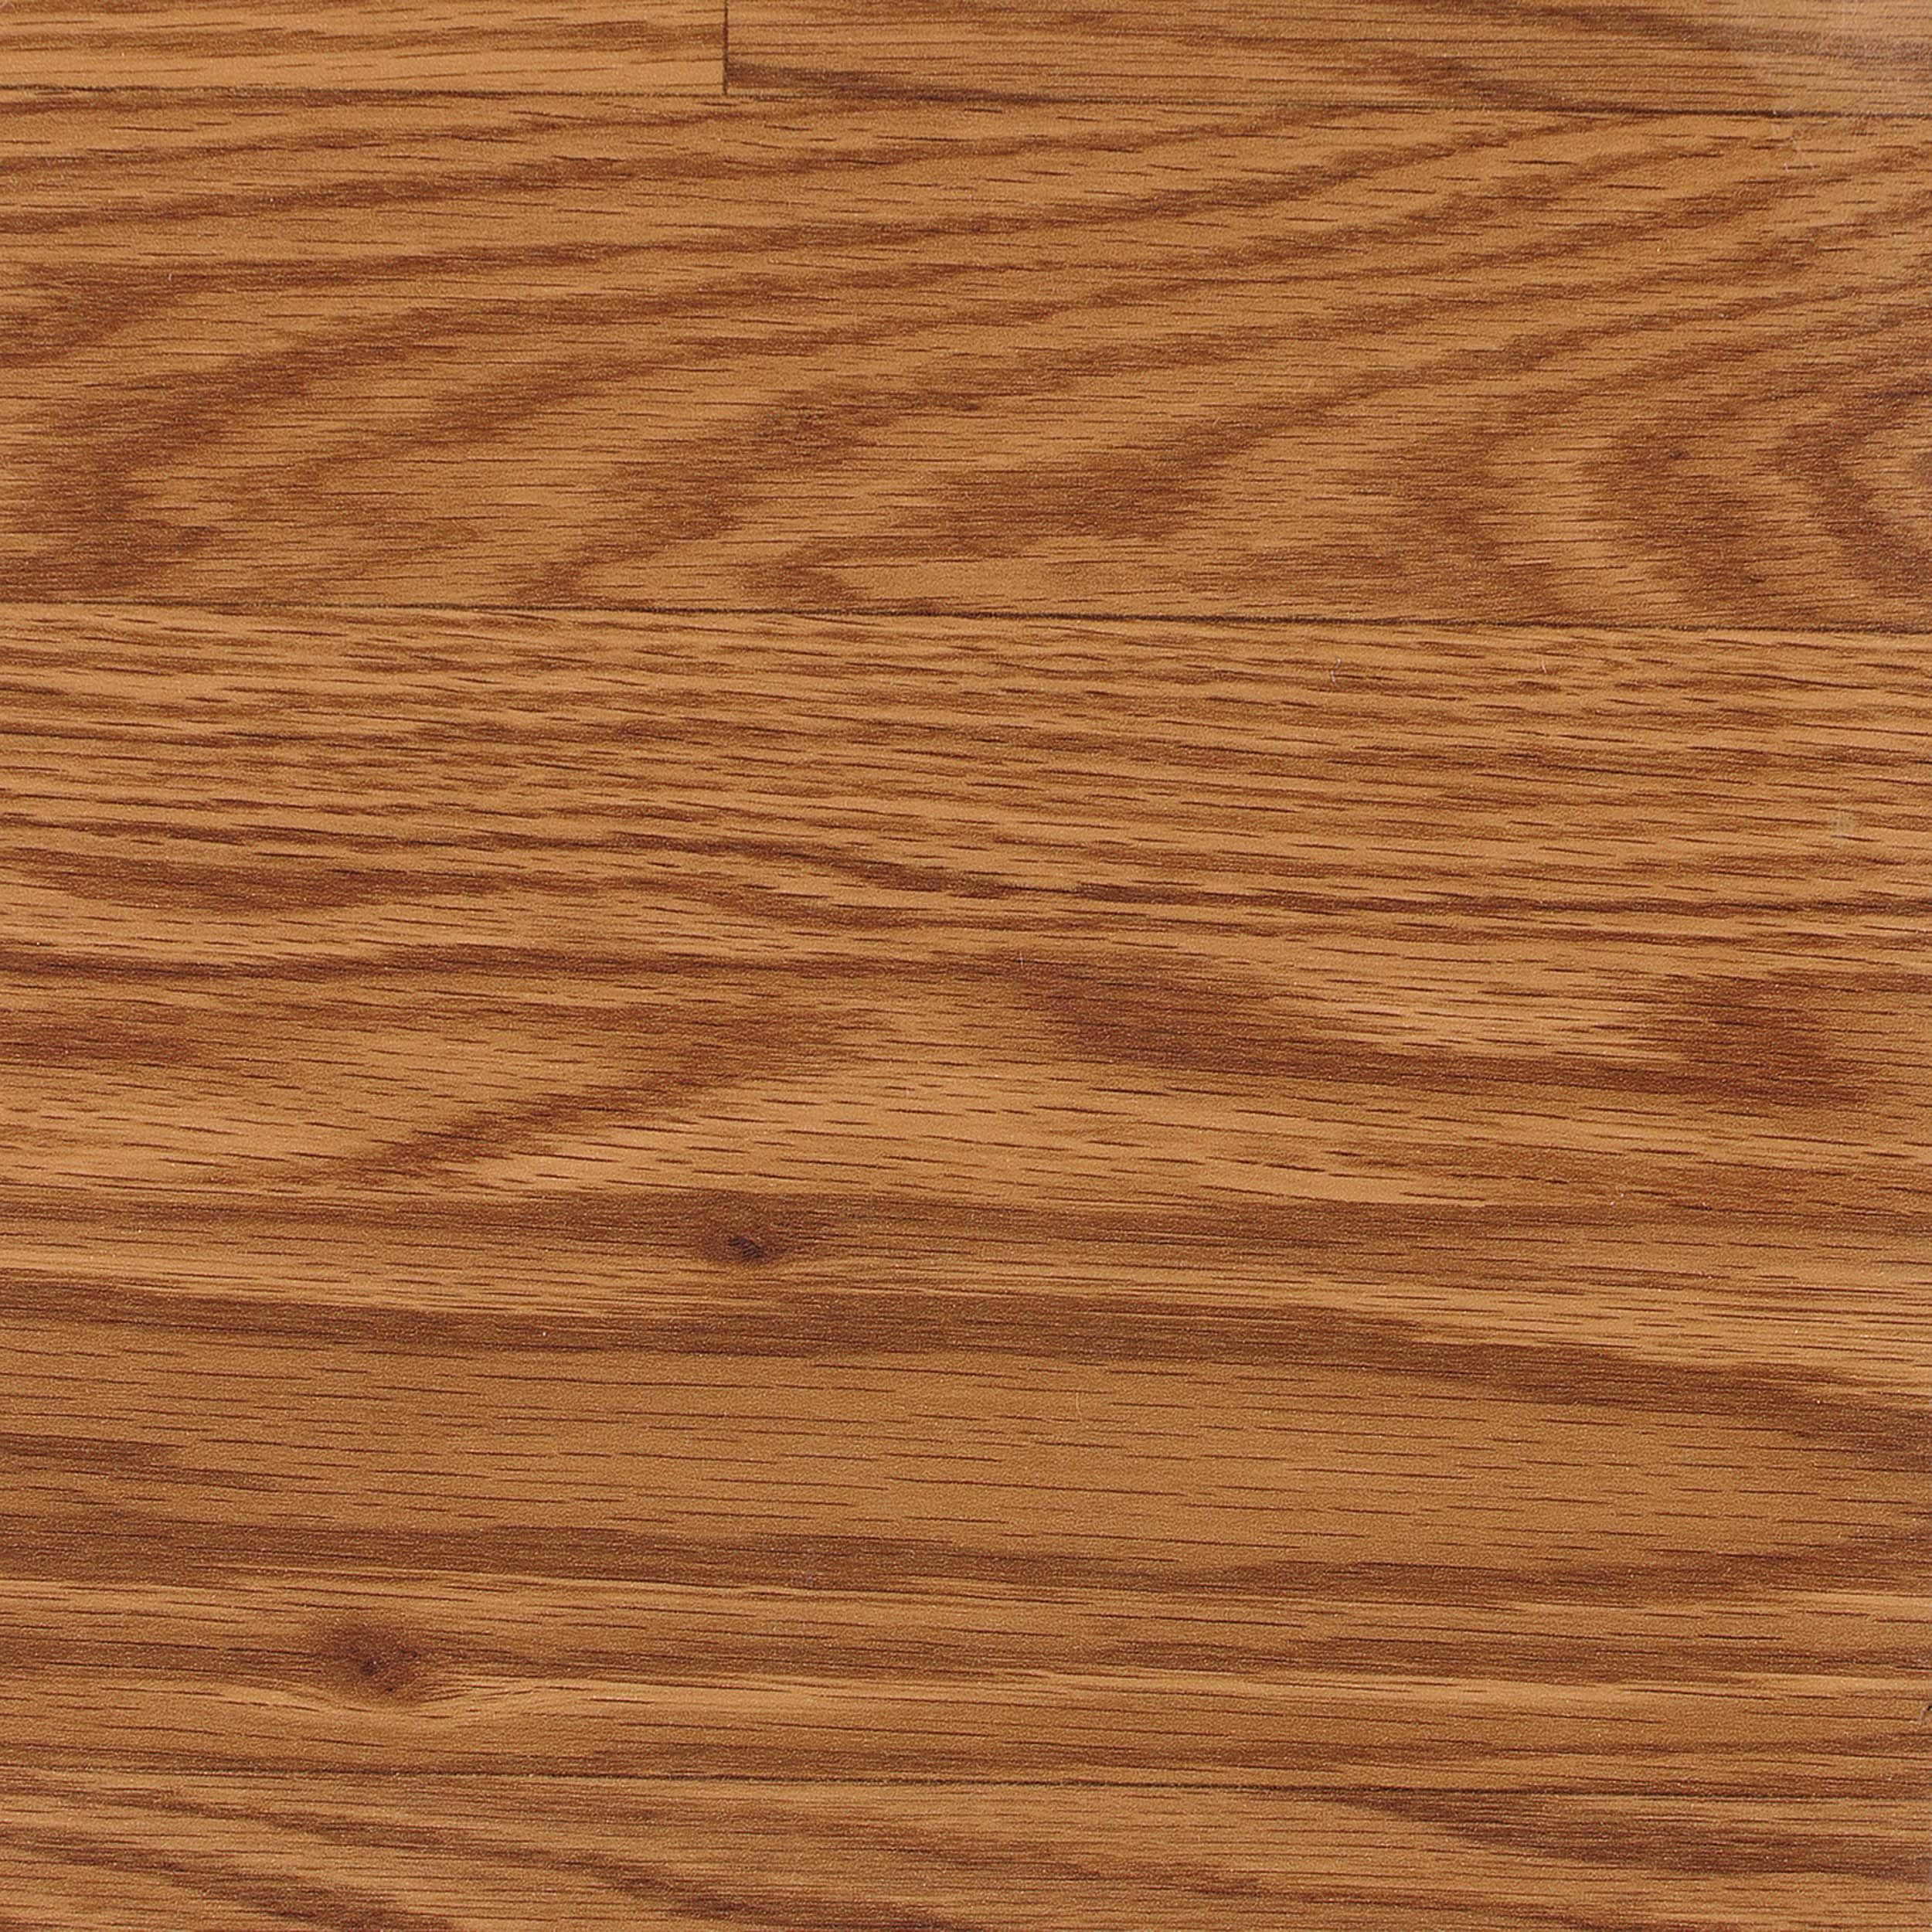 Easy Install 8mm 3-Strip Gunstock Oak Laminate Flooring